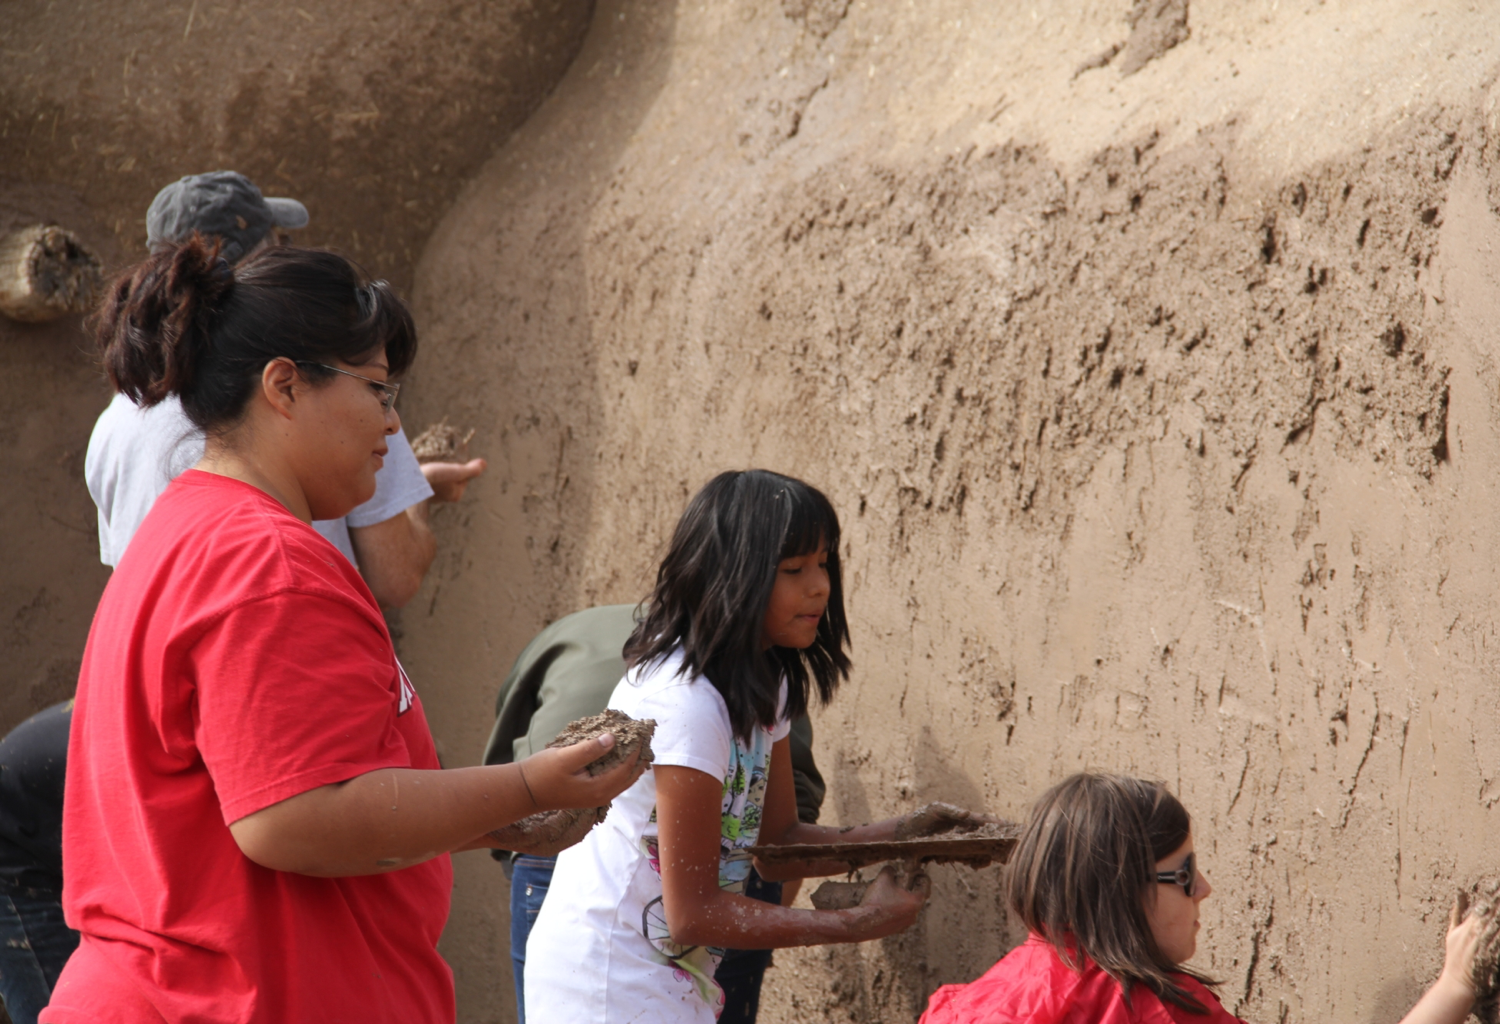 Families plastering a wall with mud